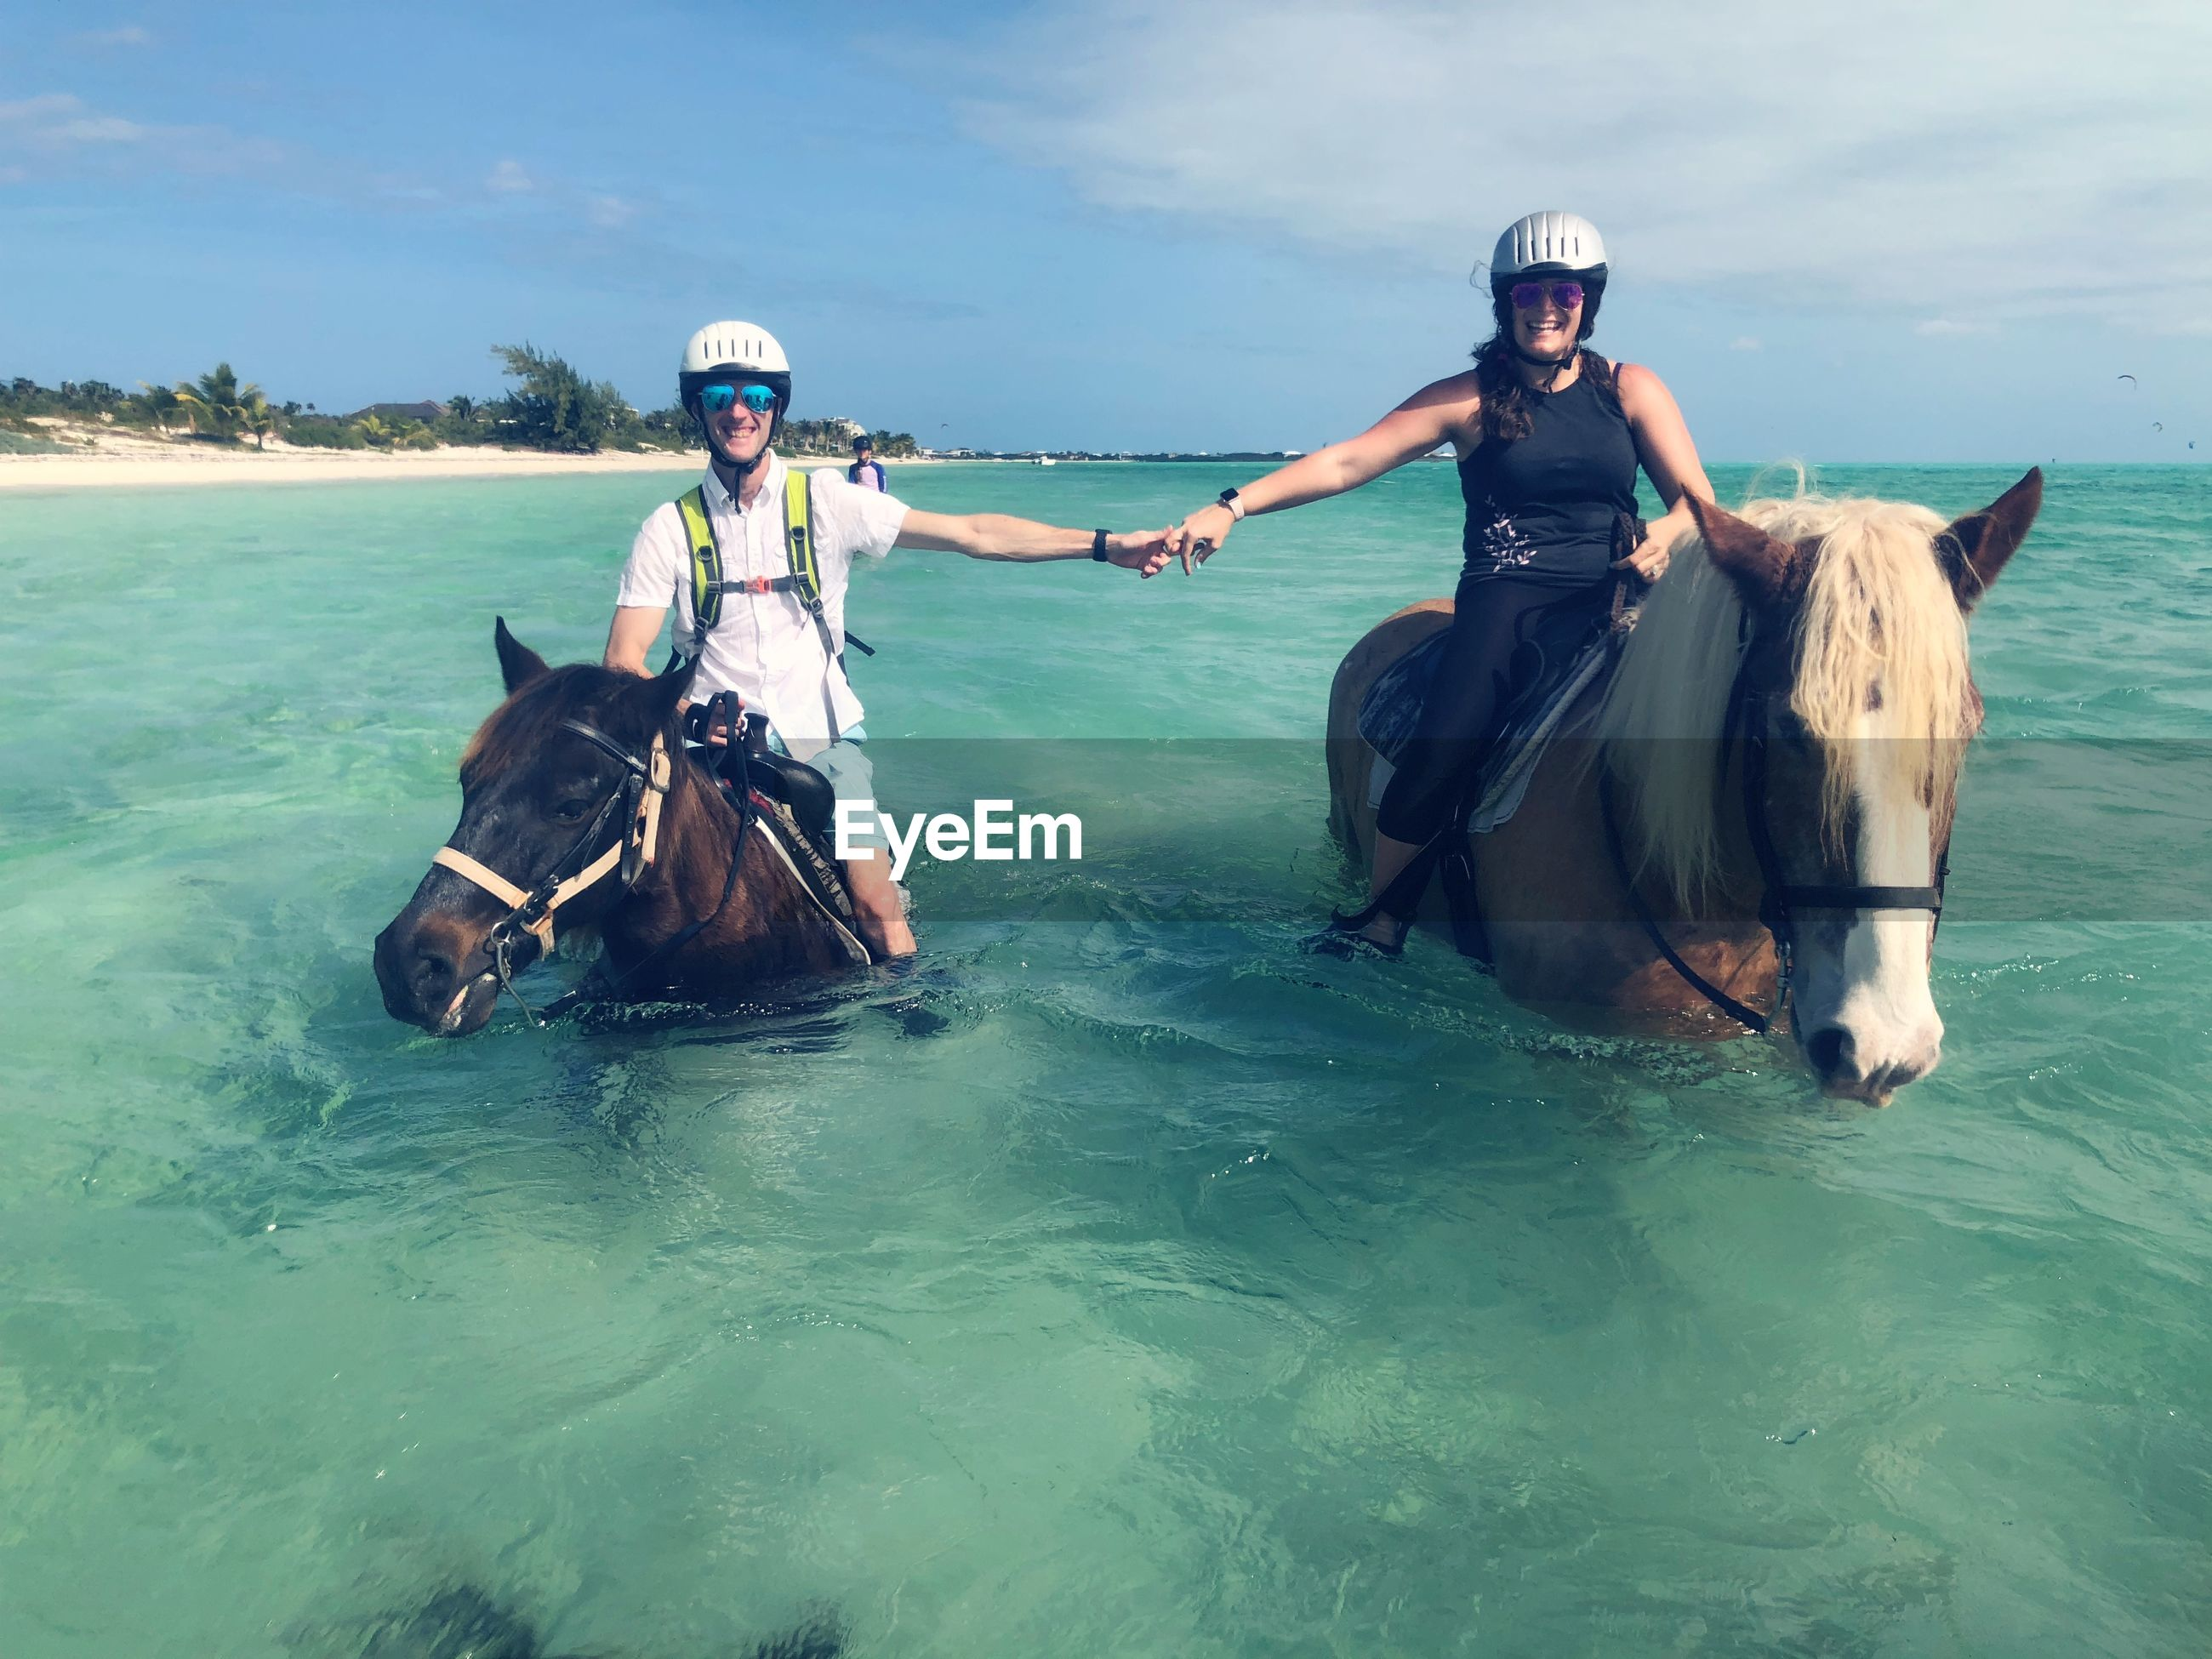 Friends holding hands while sitting on horses in sea